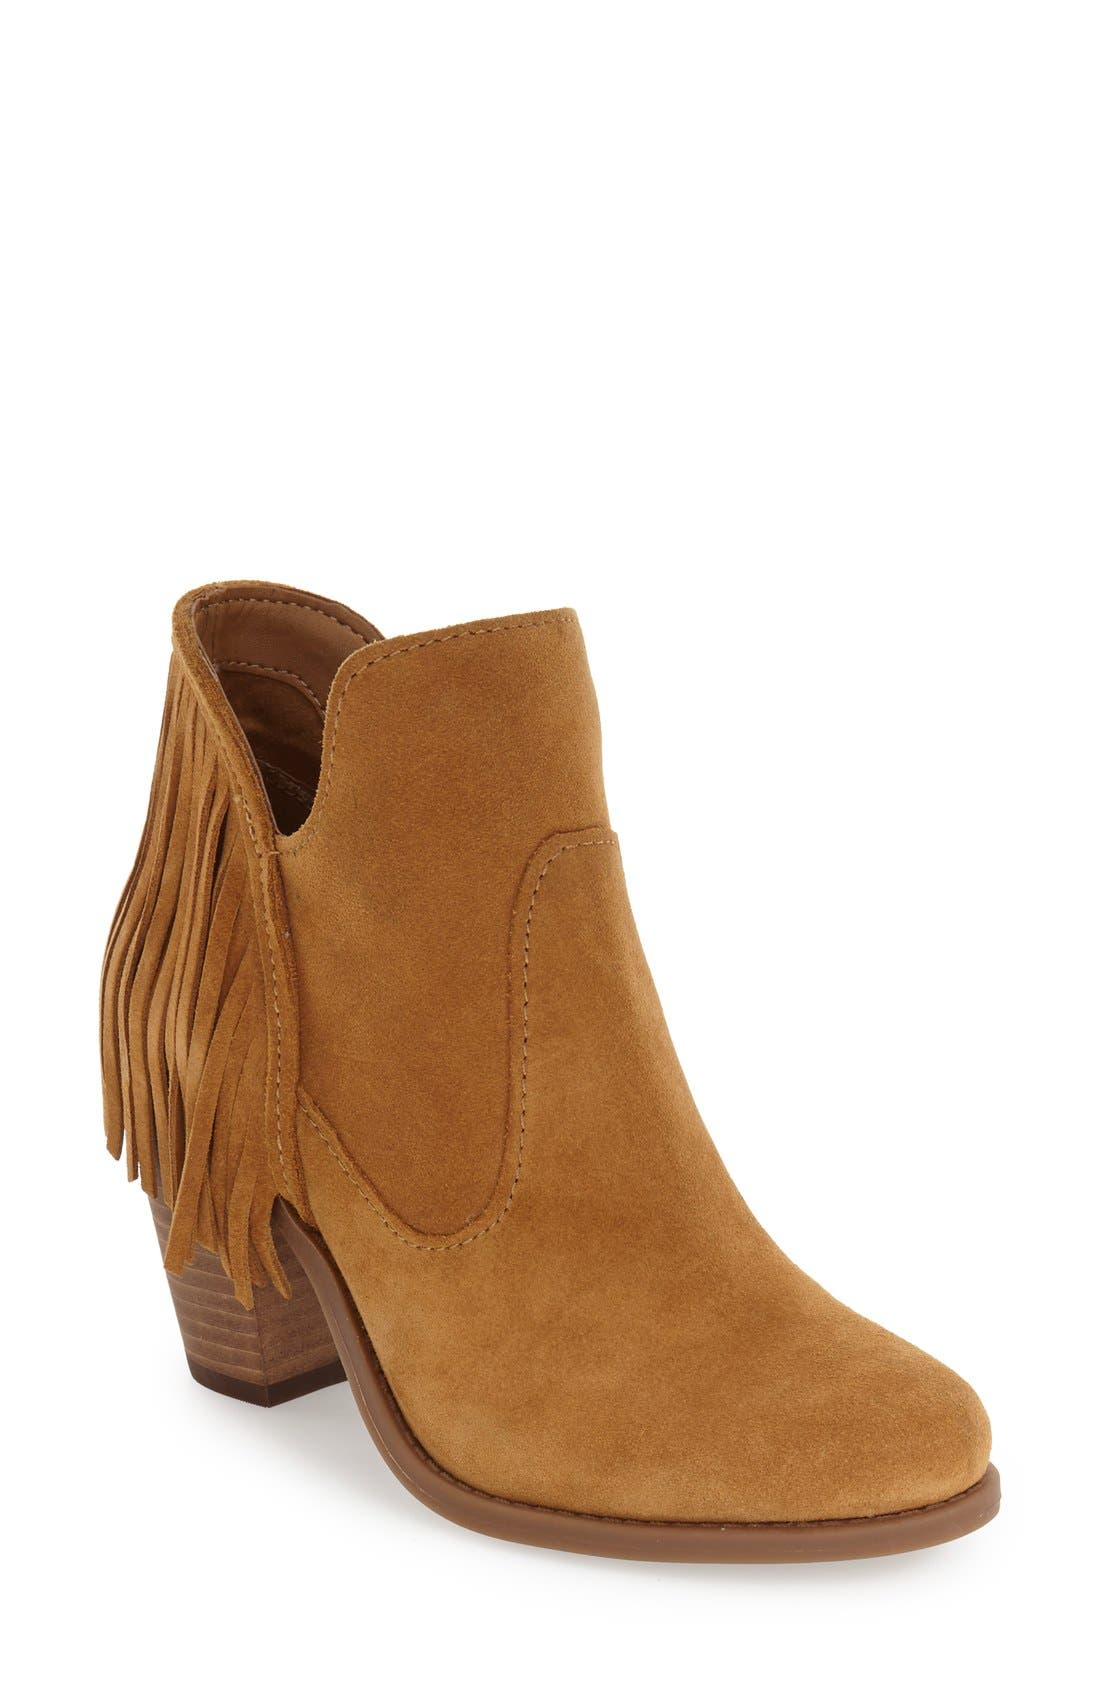 'Cecila' Fringe Bootie,                         Main,                         color, 201